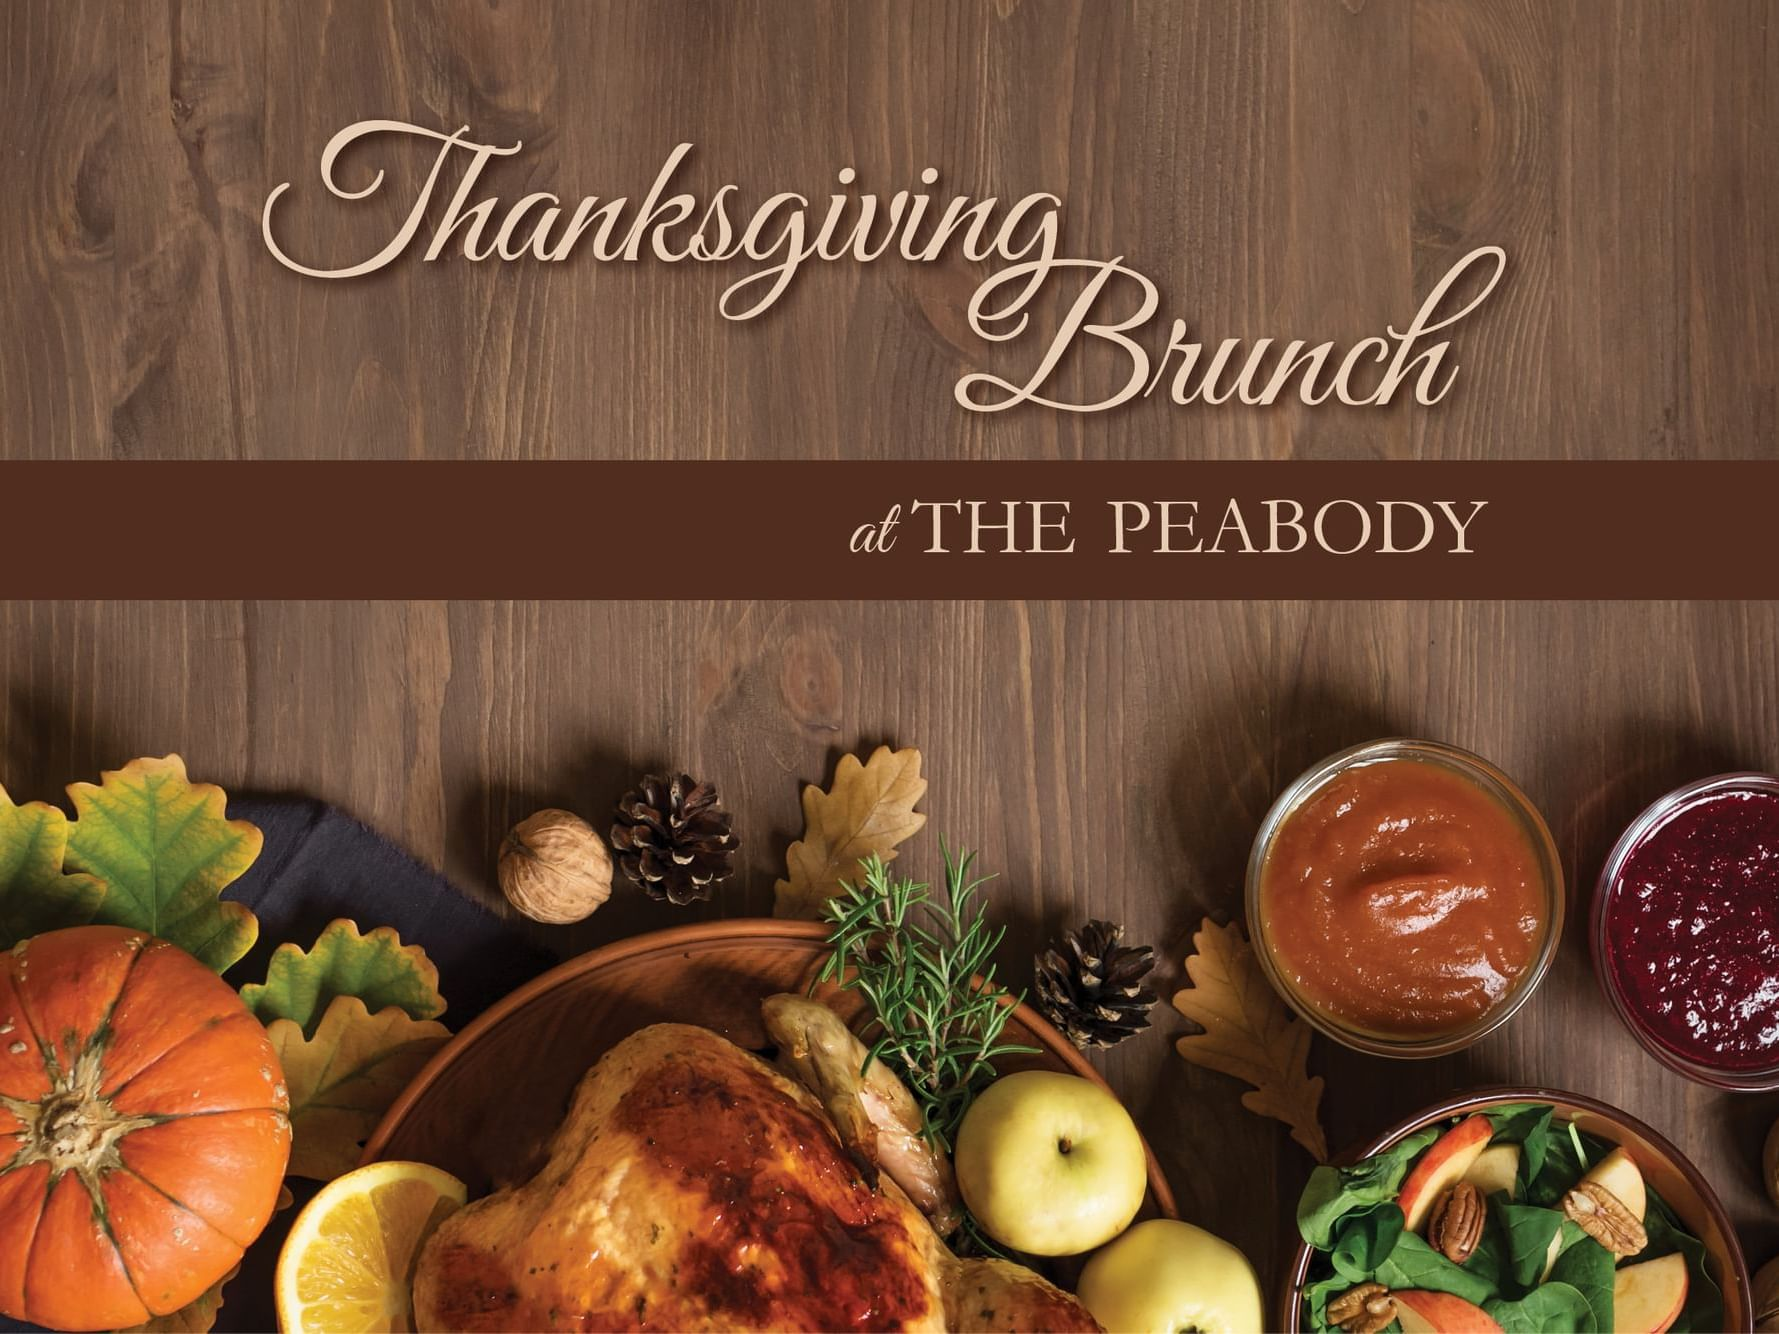 Thanksgiving Brunch at The Peabody 2021